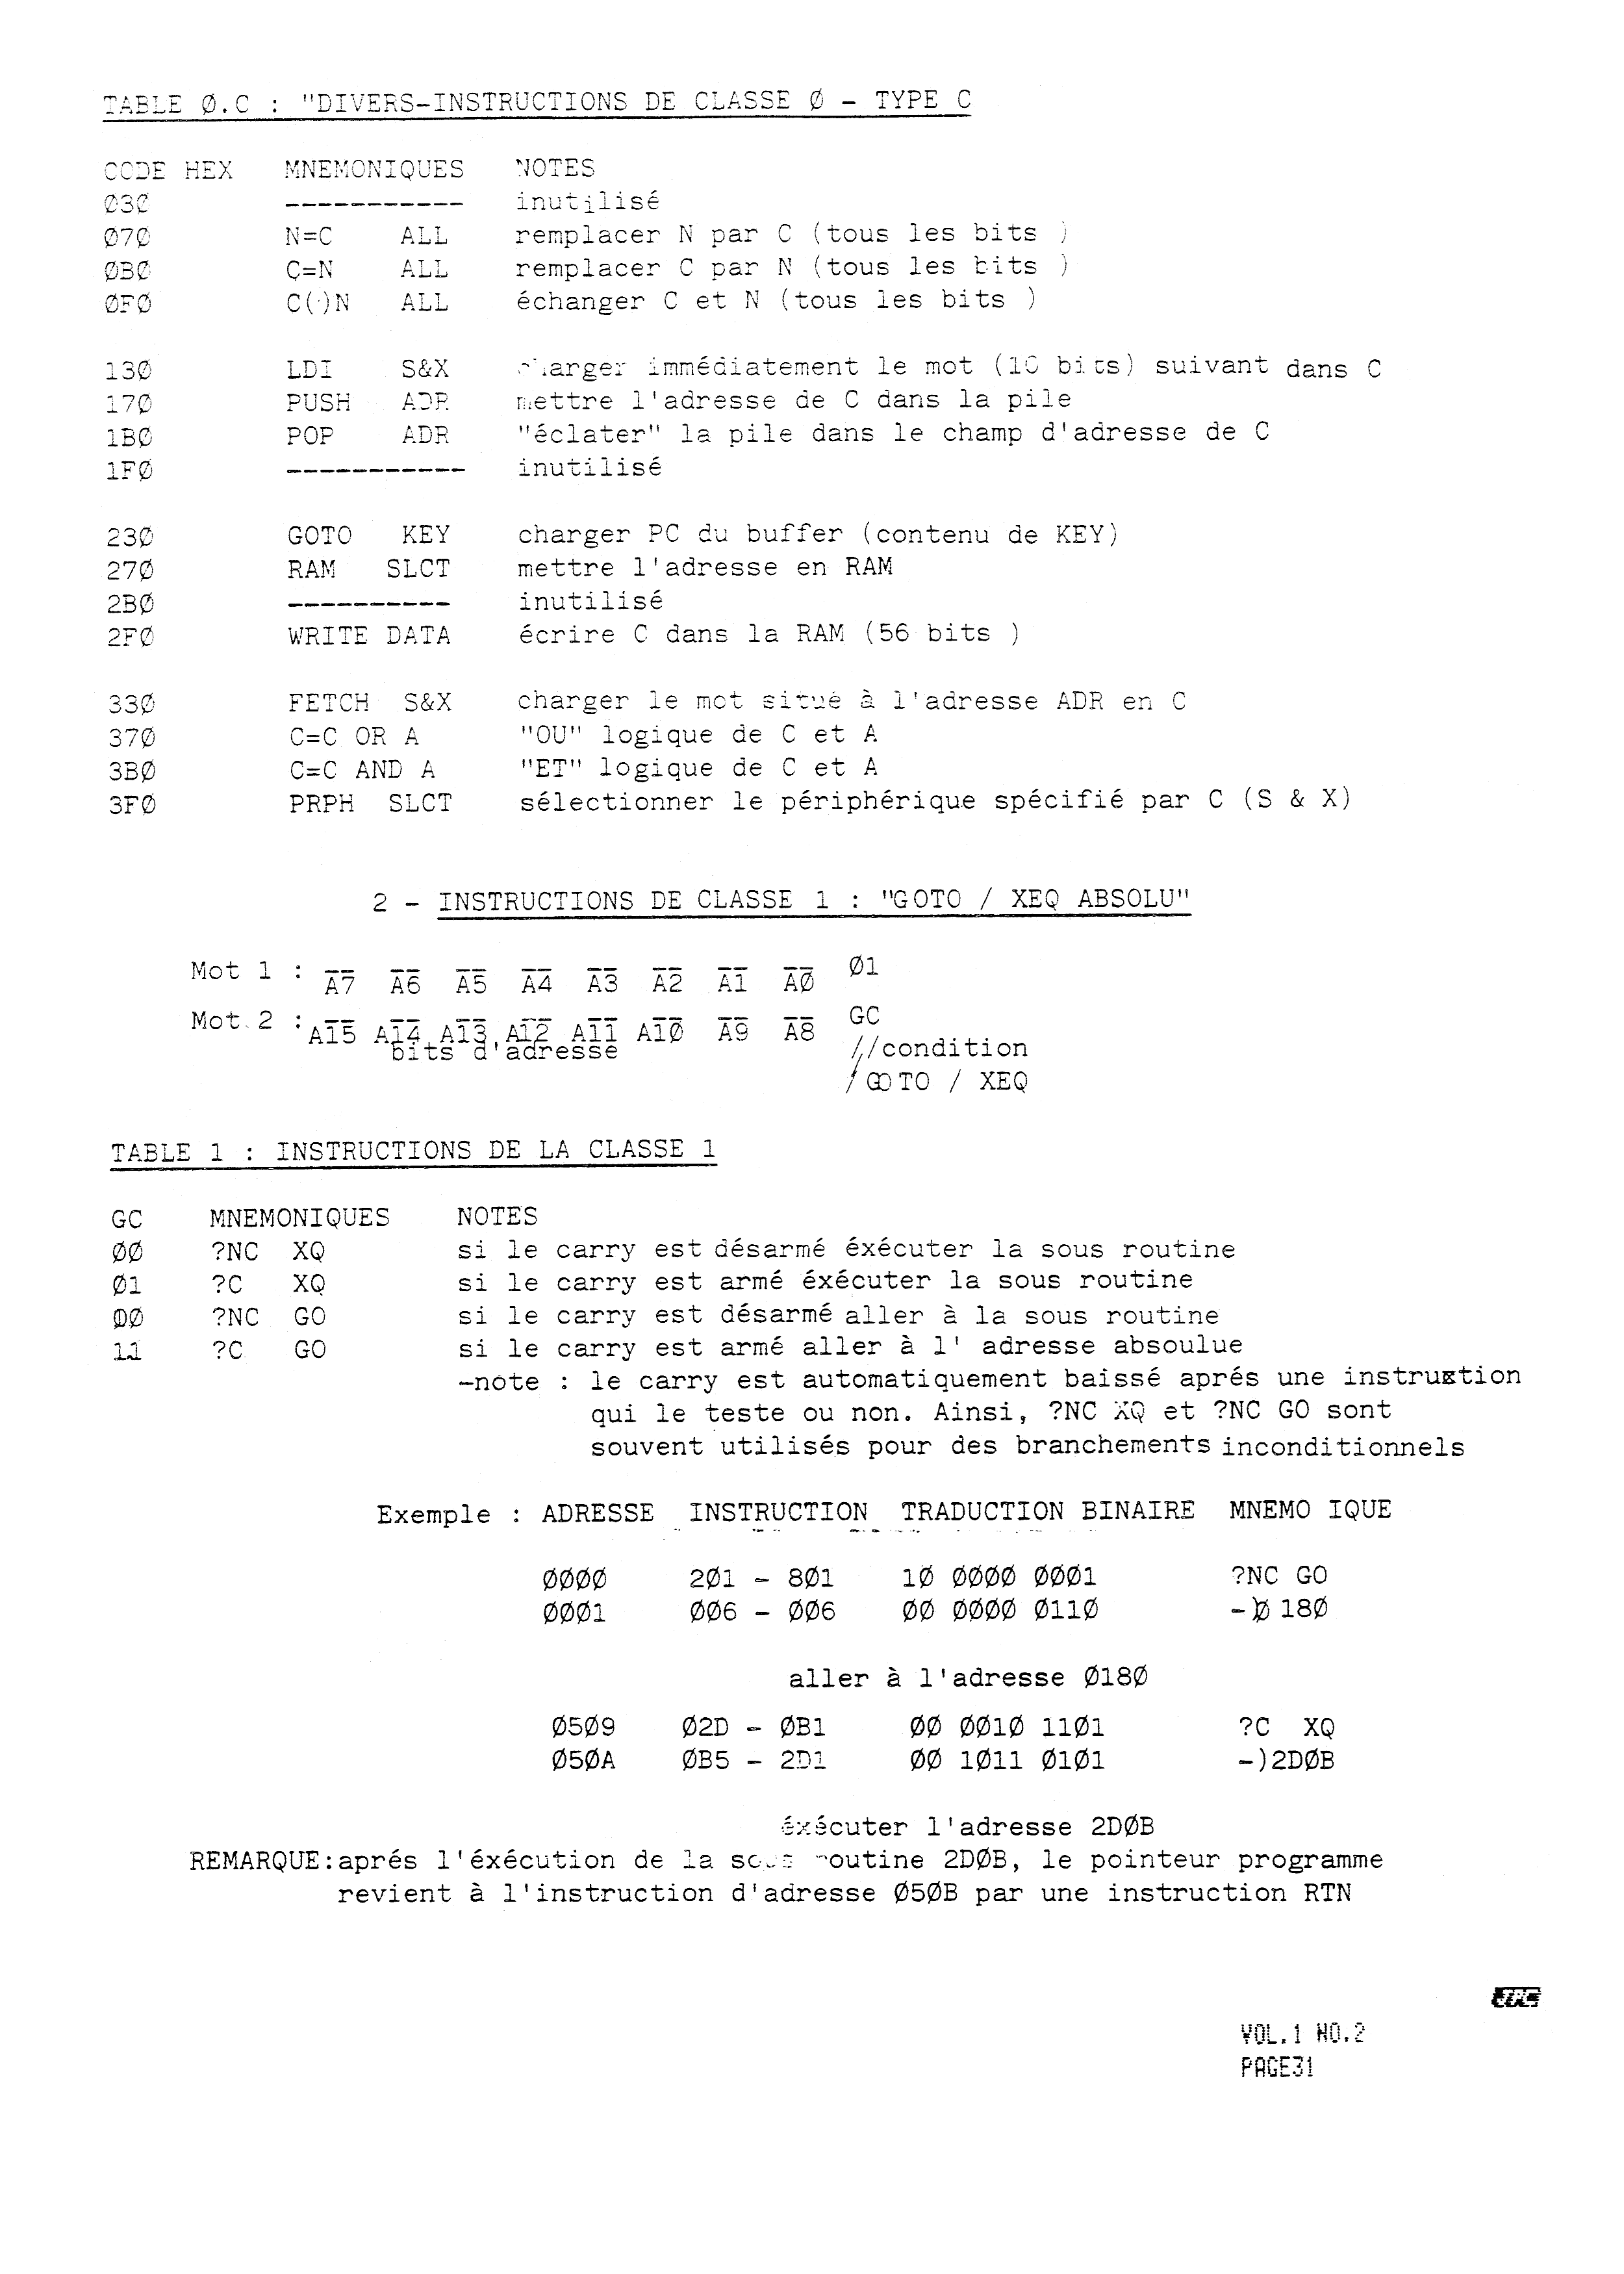 Jp-2-page-31-1000